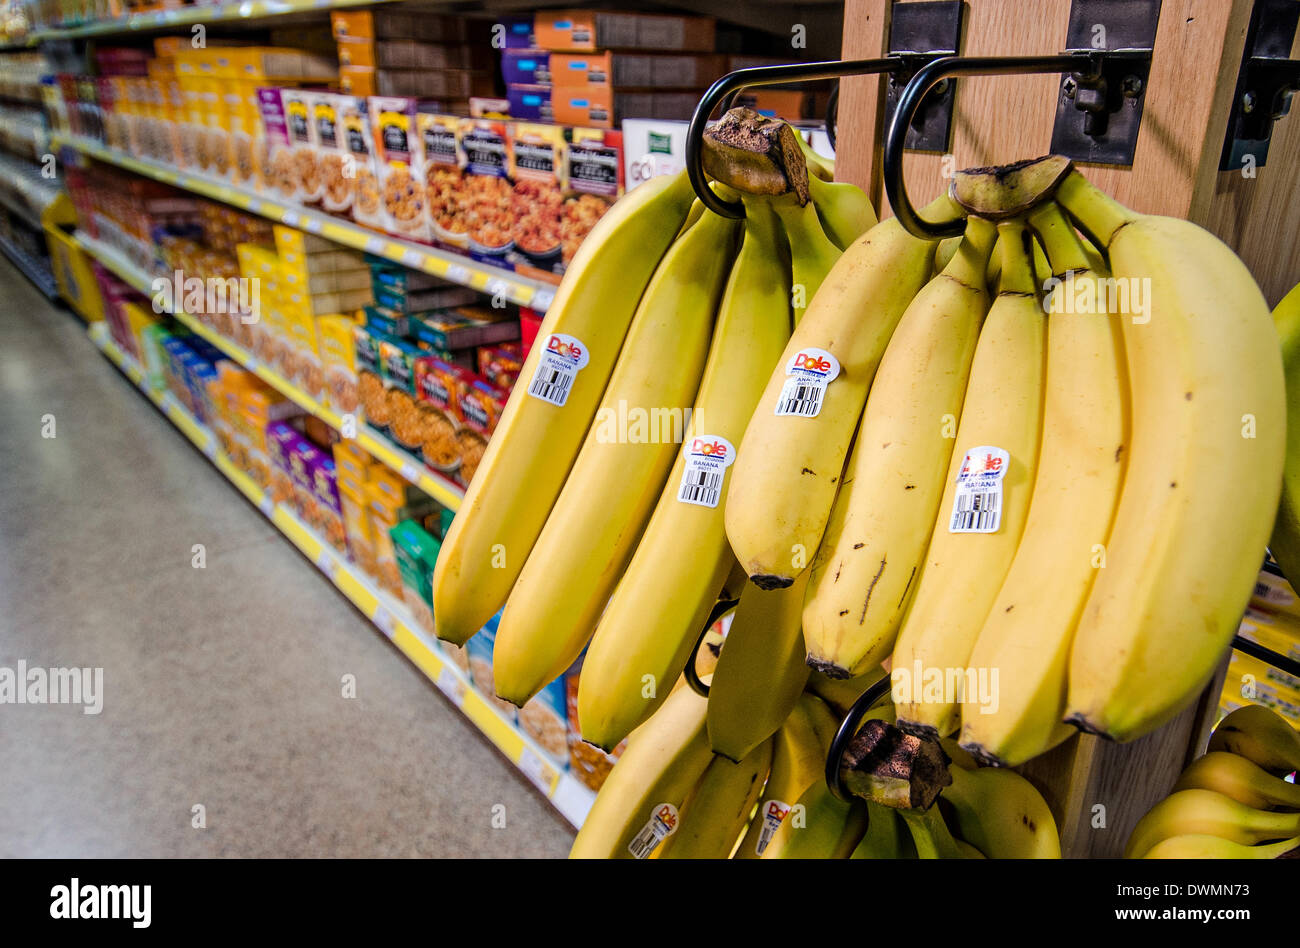 Dole brand bananas on display at a grocery store March 10, 2014 in Fairfax, Virginia. Chiquita Brands International and Ireland's Fyffes have agreed to merge March 11, 2014 displacing Dole as the world's biggest banana company in a deal valued at $1.07 billion - Stock Image